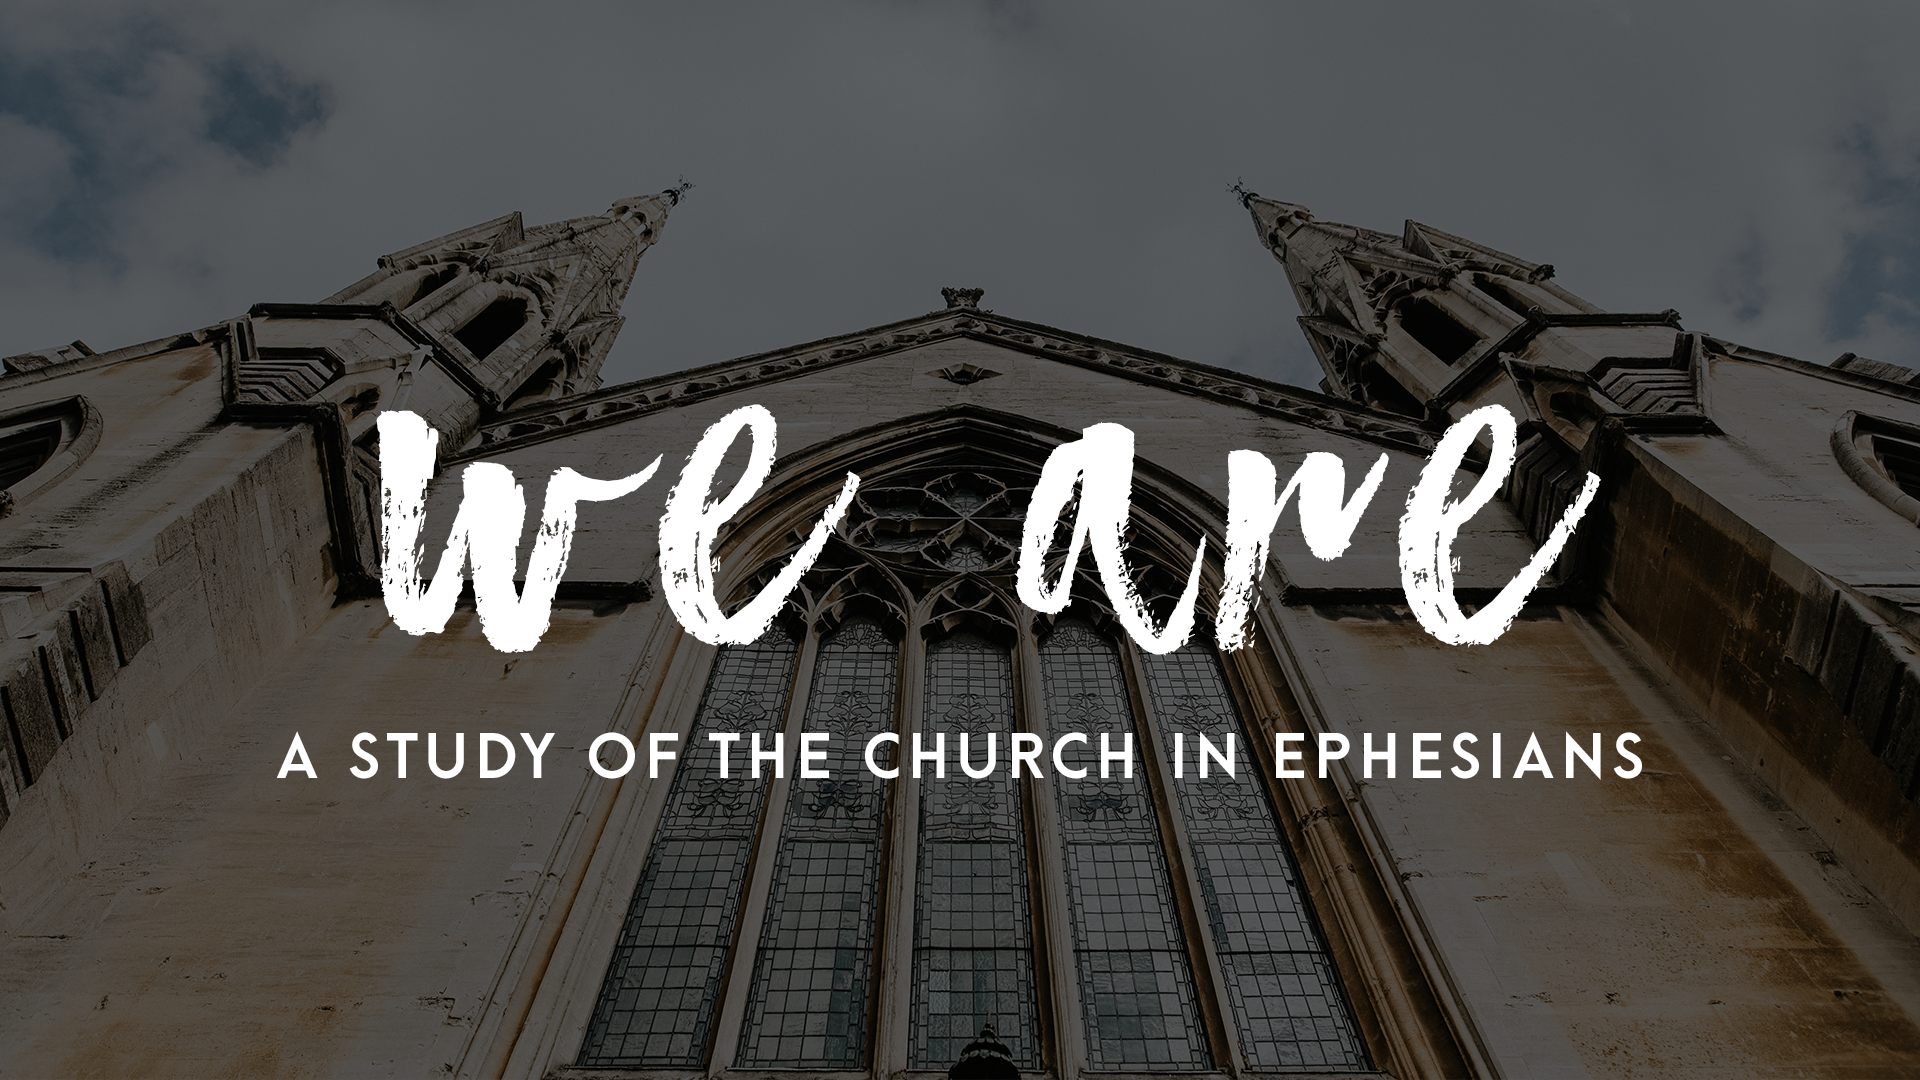 We Are - What makes a church, a church? Our study of the first-century letter to the church in Ephesus spells out what Jesus' plans for His church for every age.